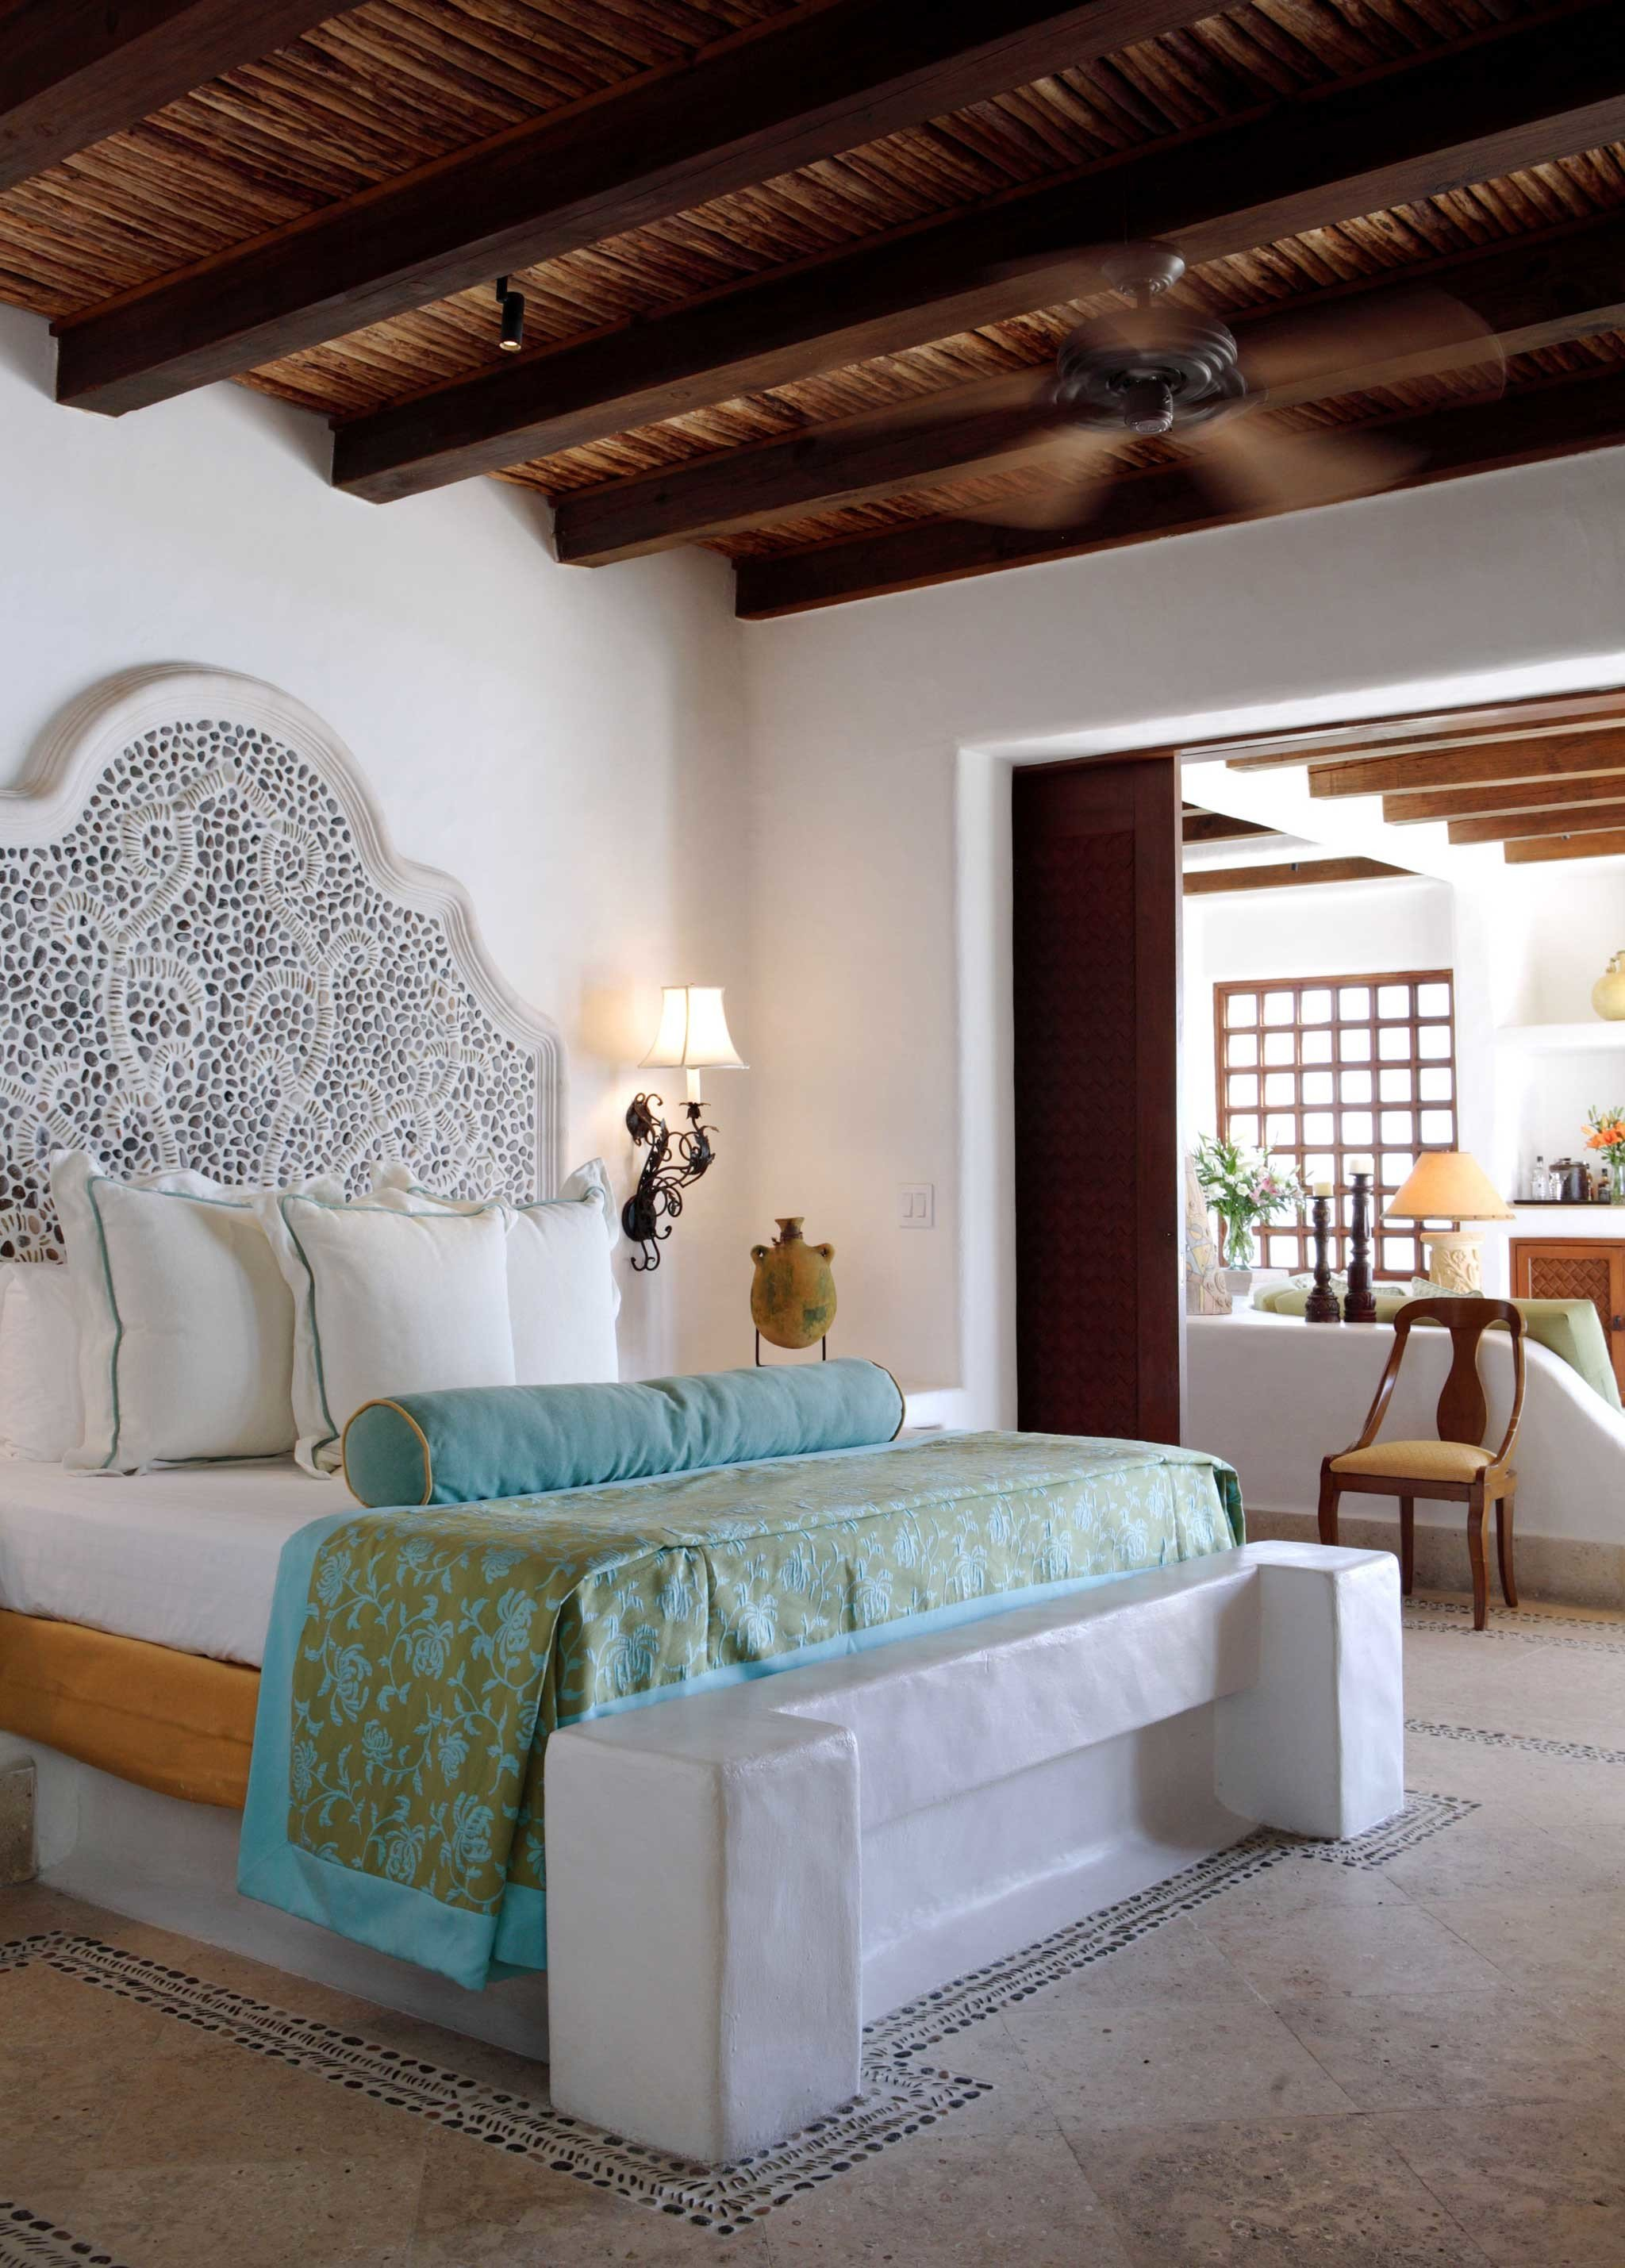 Beach Bedroom Elegant Hip Honeymoon Hotels Luxury Mexico Modern Romance Scenic views Suite Tulum sofa living room property home hardwood farmhouse cottage containing